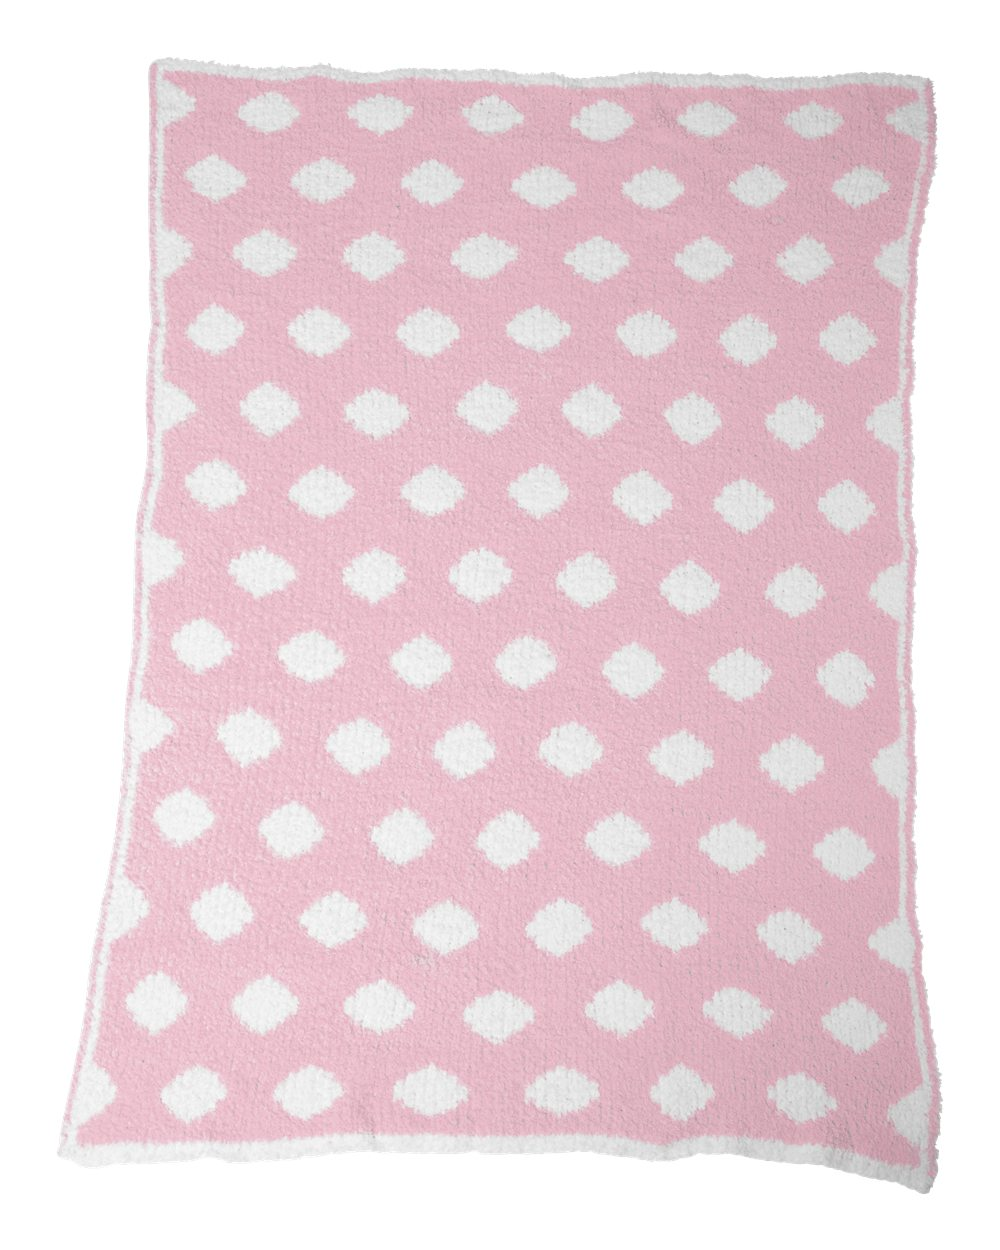 click to view kiss pink/white